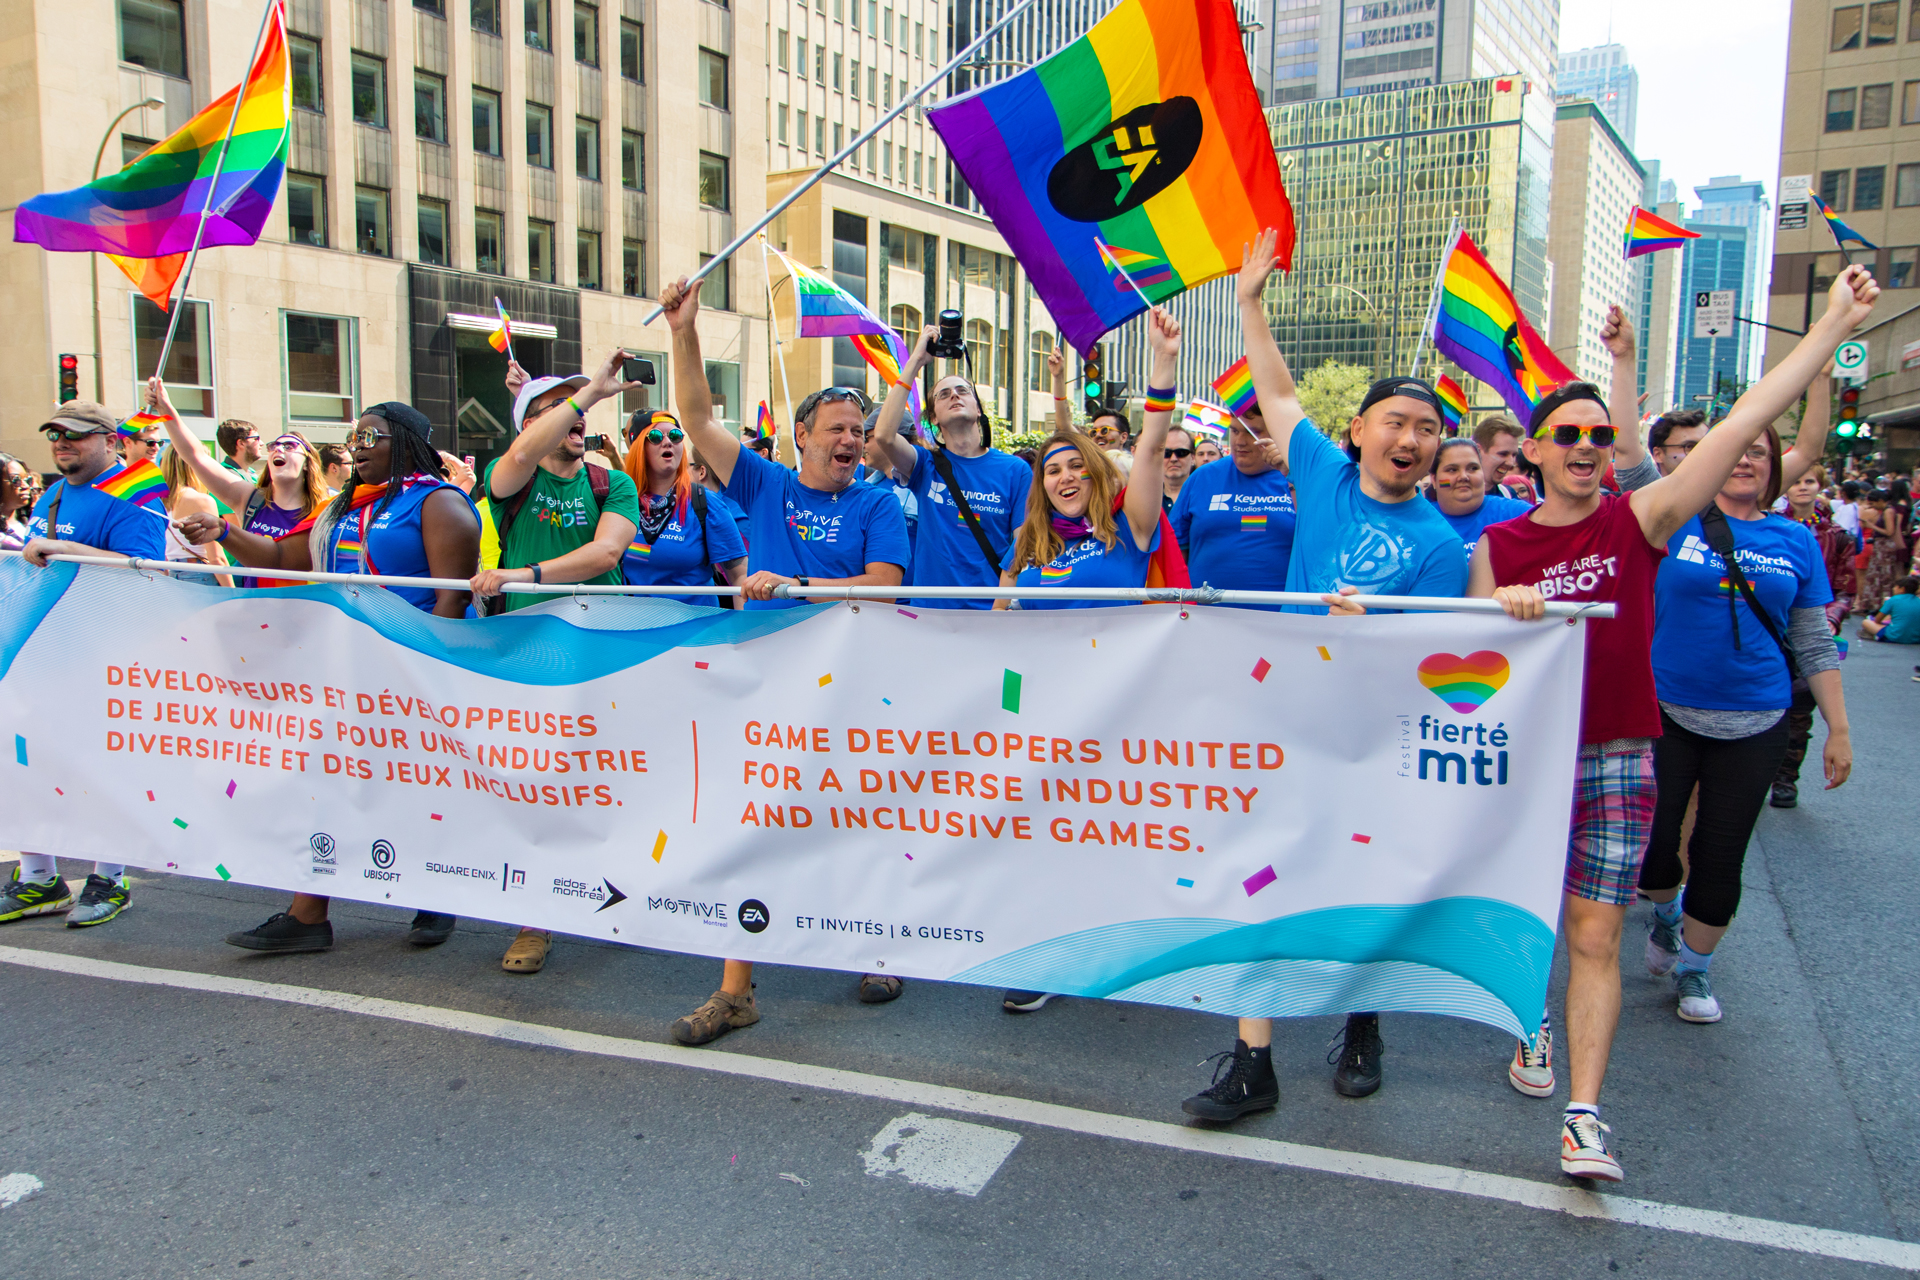 United for a diverse and inclusive industry at the Montreal pride parade